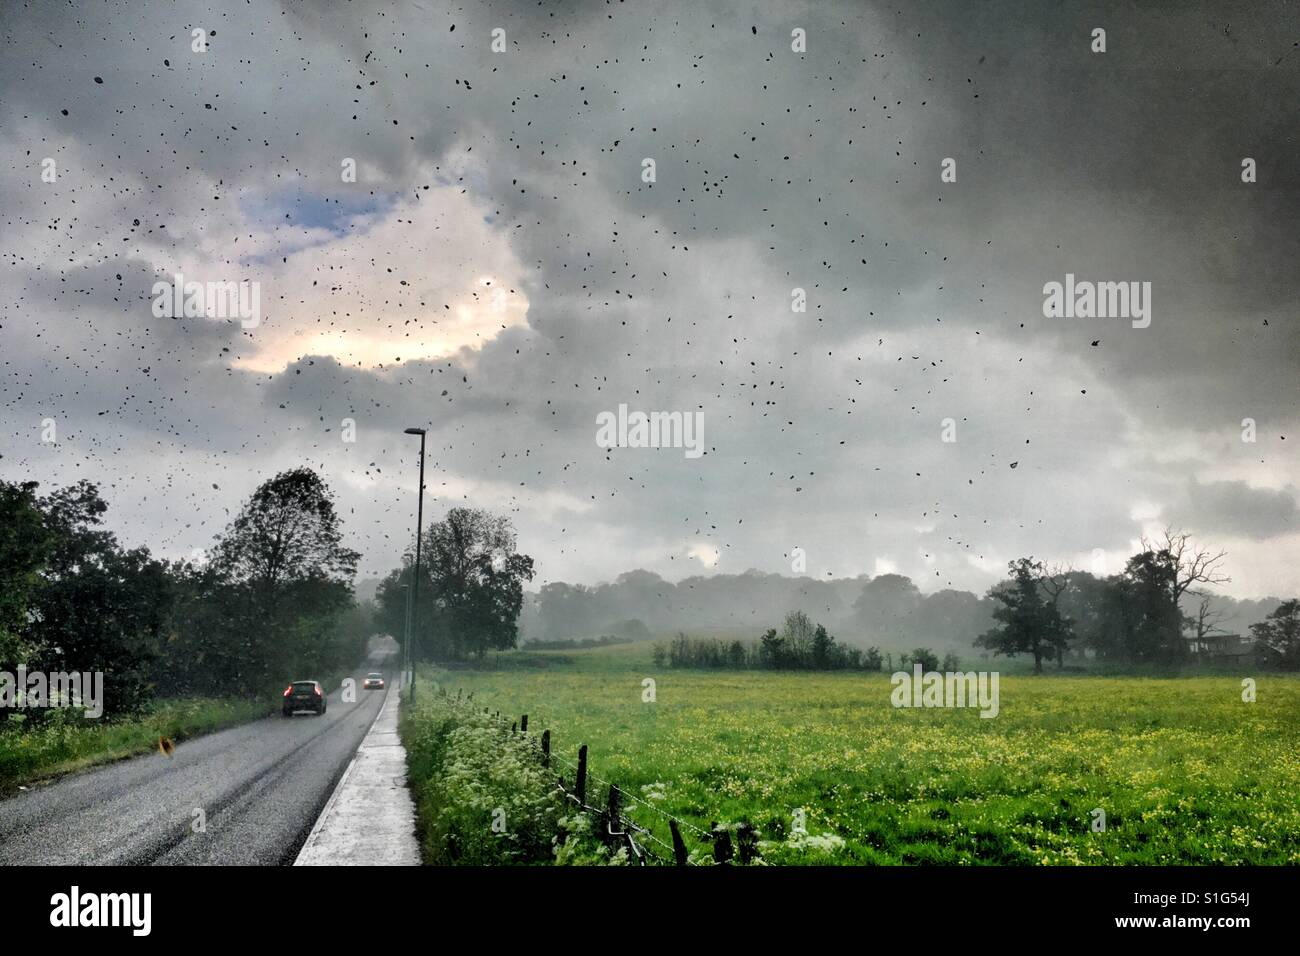 Heavy Rain in U.K. Tempesta di estate Immagini Stock